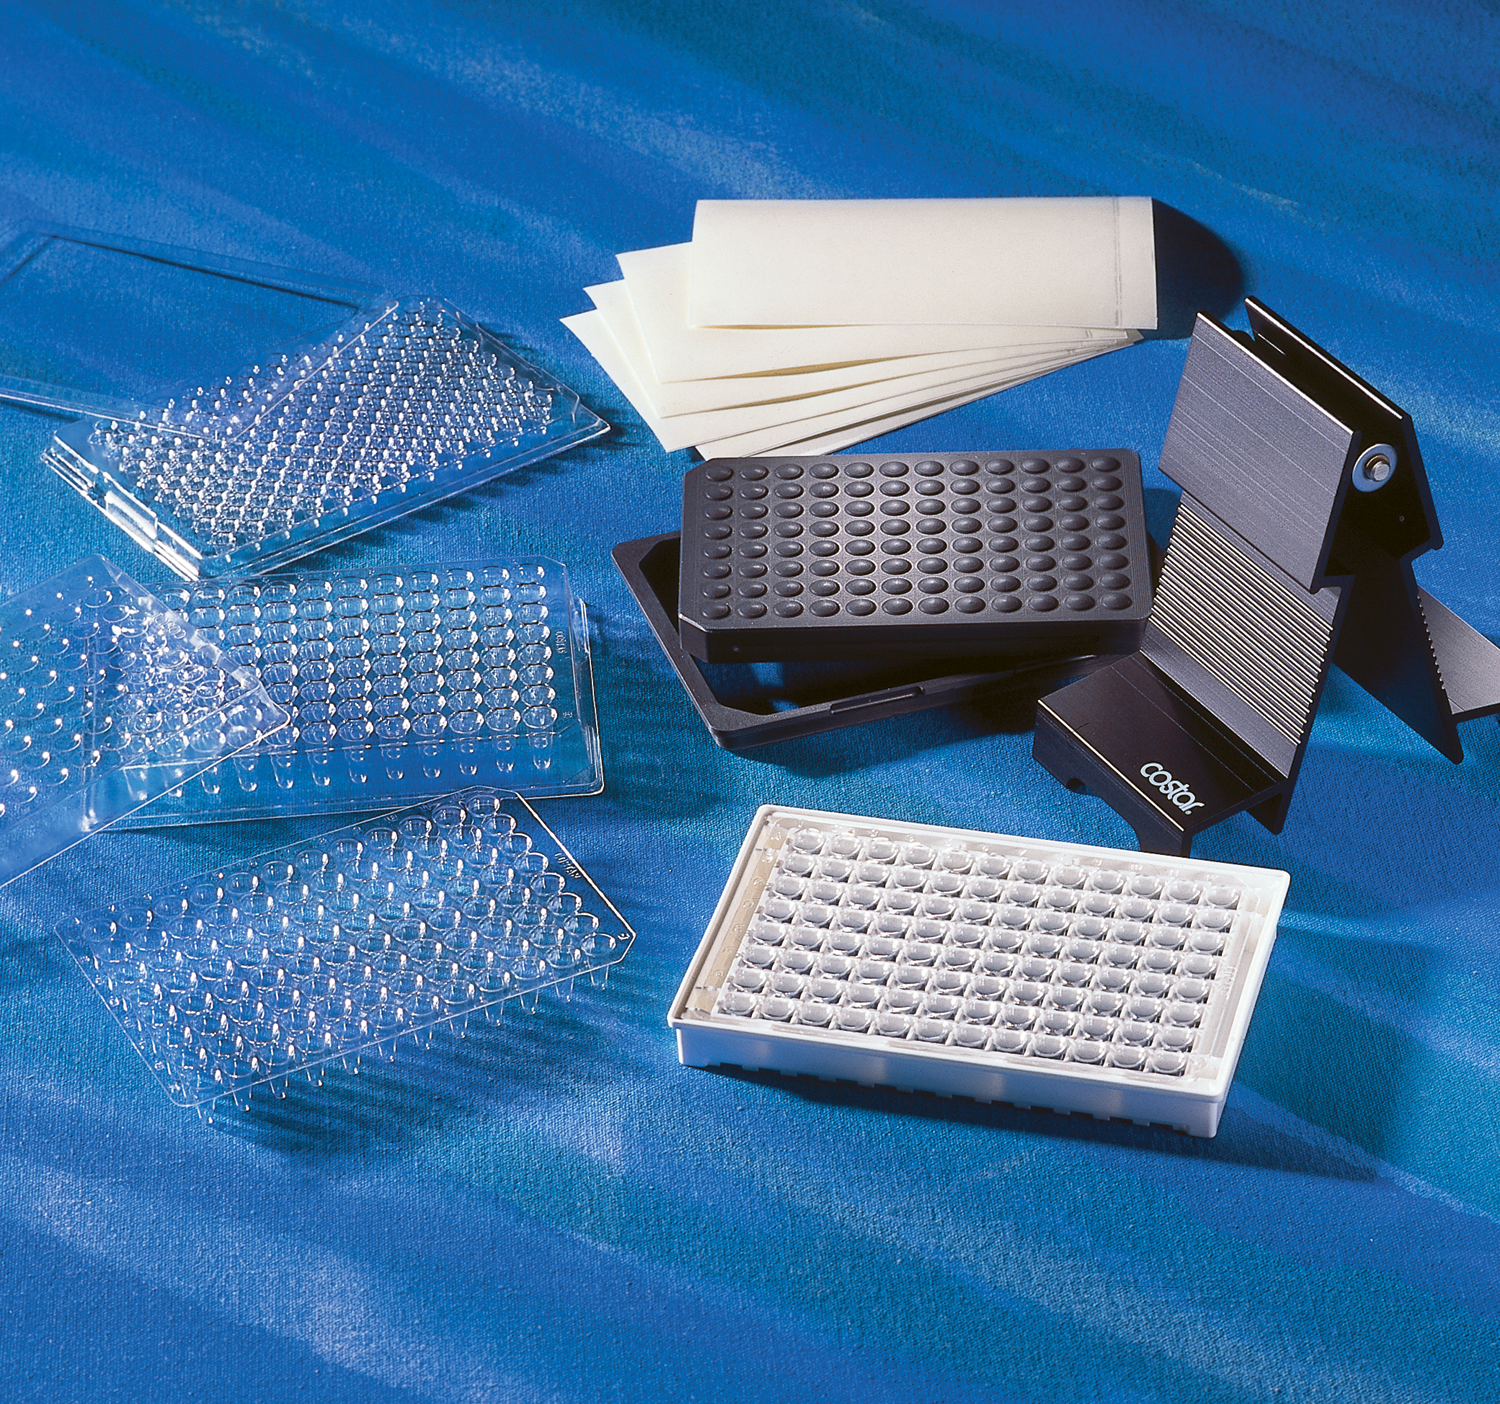 96 Well Model P Polycarbonate PCR Plate, Corning